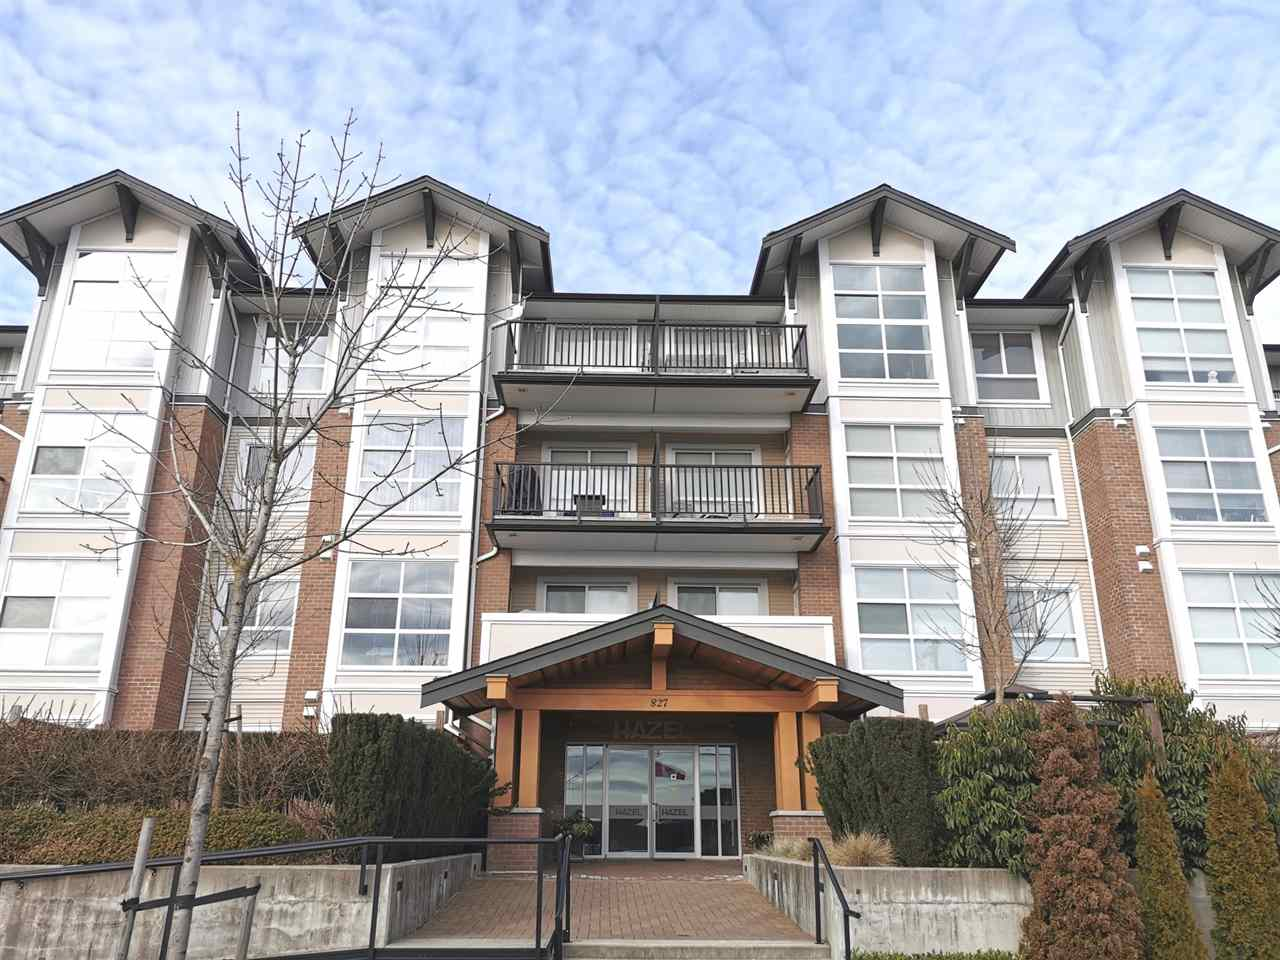 WELCOME to Hazel - Prime location in the heart of West Coquitlam. This sweet home boasts 9' ceilings, a spacious bedroom, nice sized balcony, open concept layout, with polished quartz countertops, stainless steel appliances, soft closed cabinetry and electric fireplace. Driving 20mins to BCIT or SFU. Minutes away from great local shops, community parks, restaurants & golf courses. 1 parking and 1 storage included.